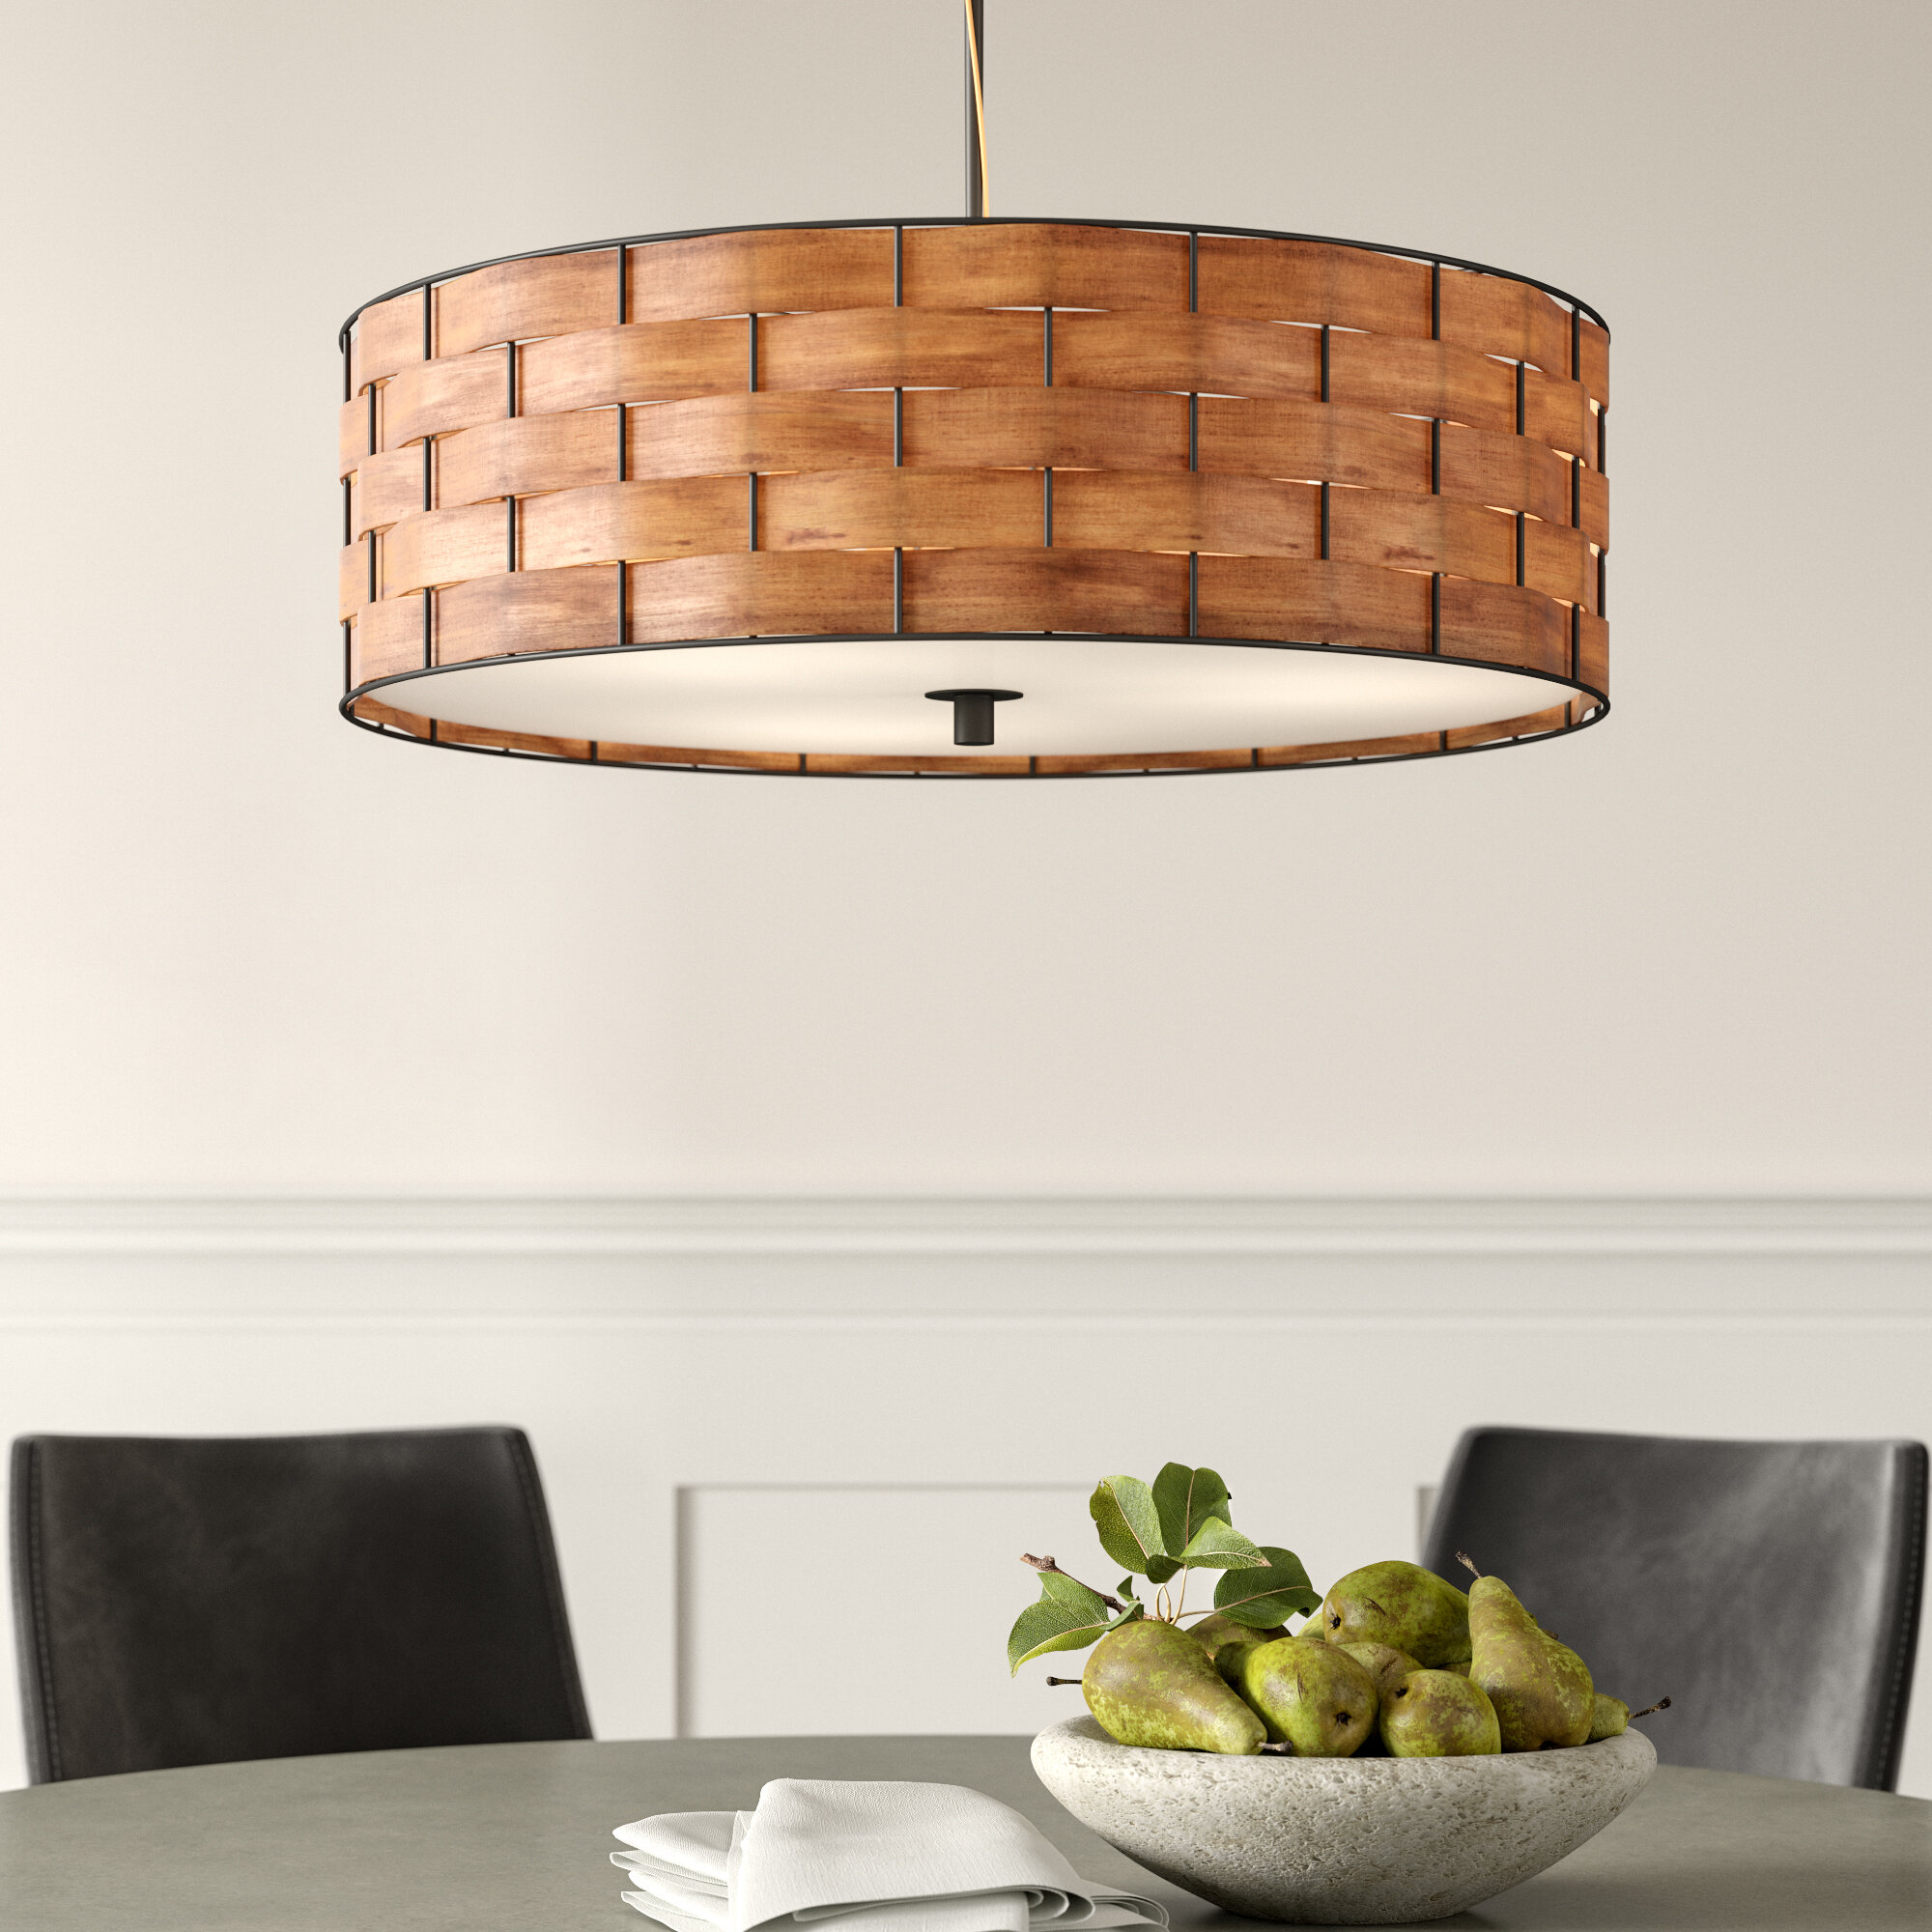 Fairlawn 3-Light Drum Chandelier intended for Alina 5-Light Drum Chandeliers (Image 19 of 30)